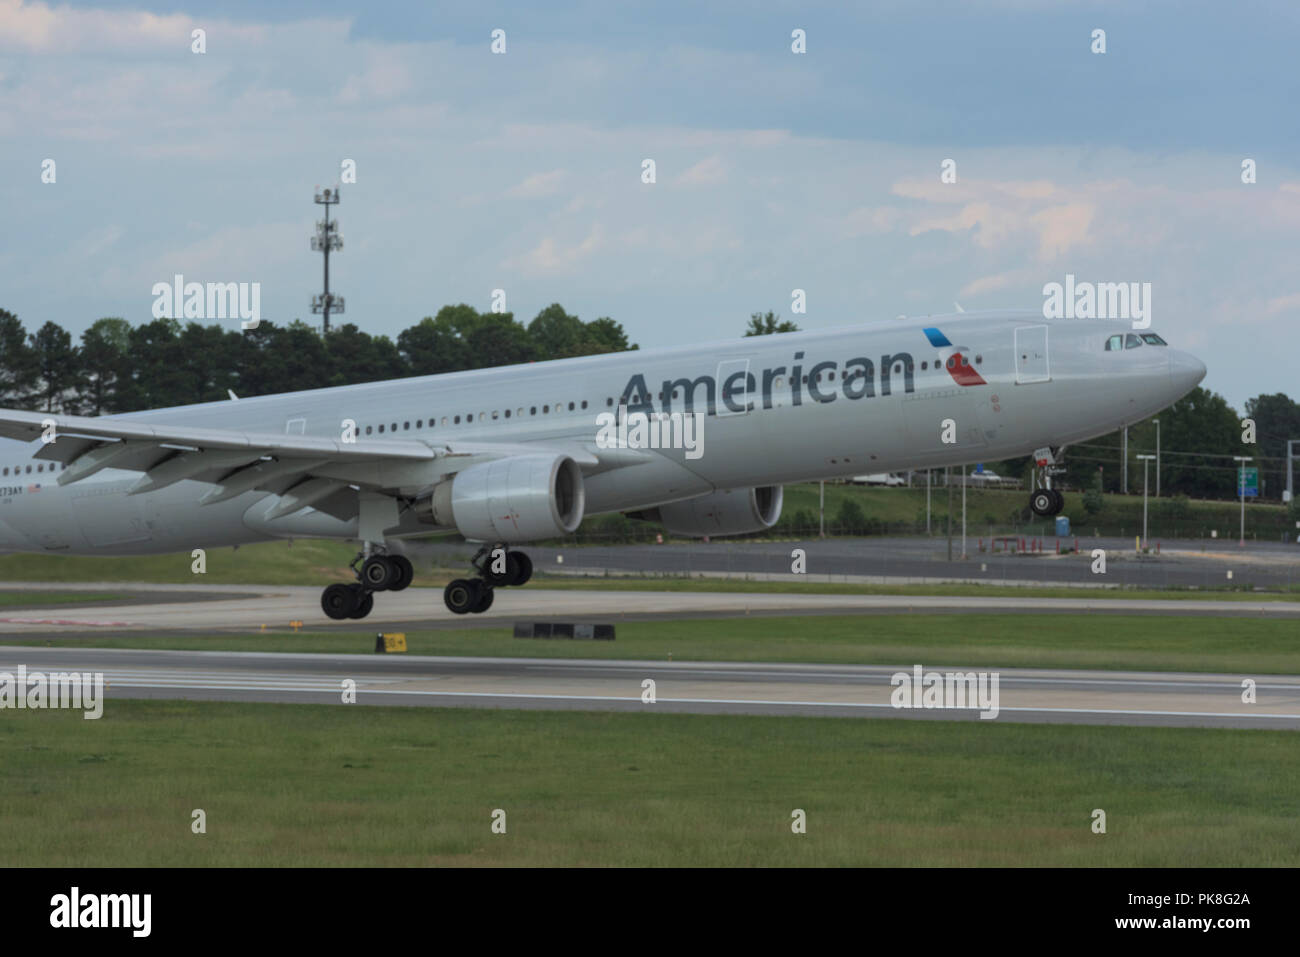 Charlotte, NC - May 14, 2017/USA: A commercial airliner begins its takeoff at Charlotte Douglas International Airport, Charlotte, NC - Stock Image